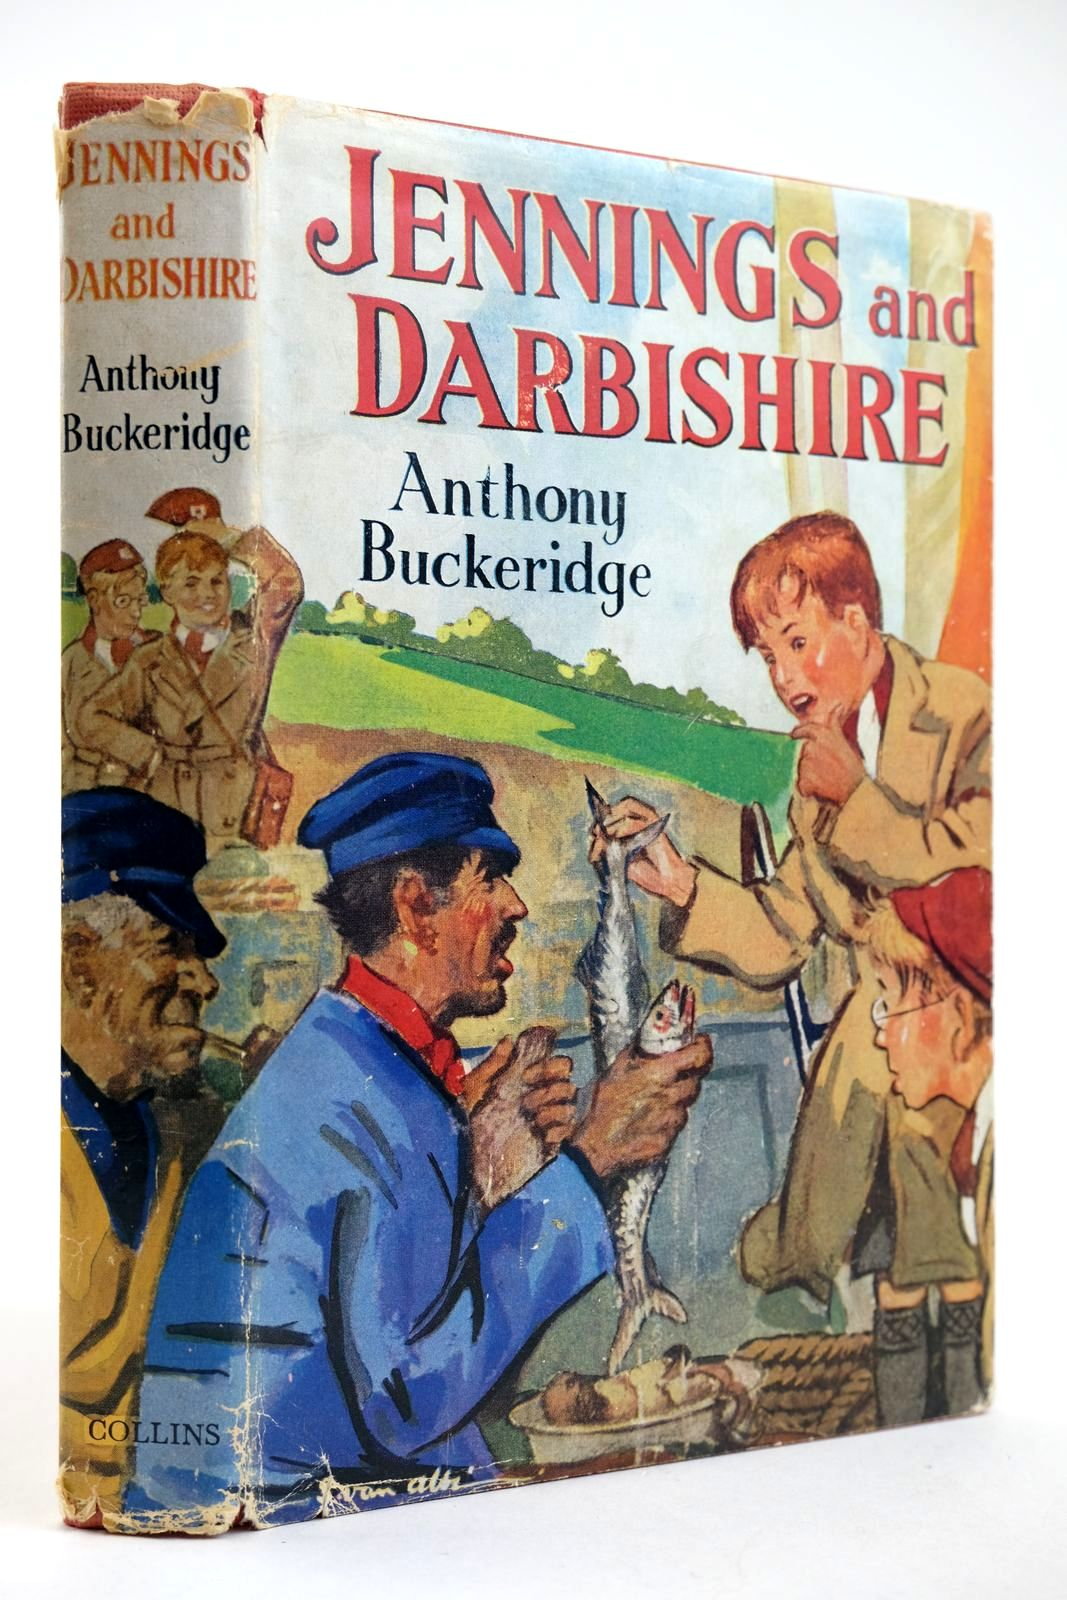 Photo of JENNINGS AND DARBISHIRE written by Buckeridge, Anthony published by Collins (STOCK CODE: 2132707)  for sale by Stella & Rose's Books